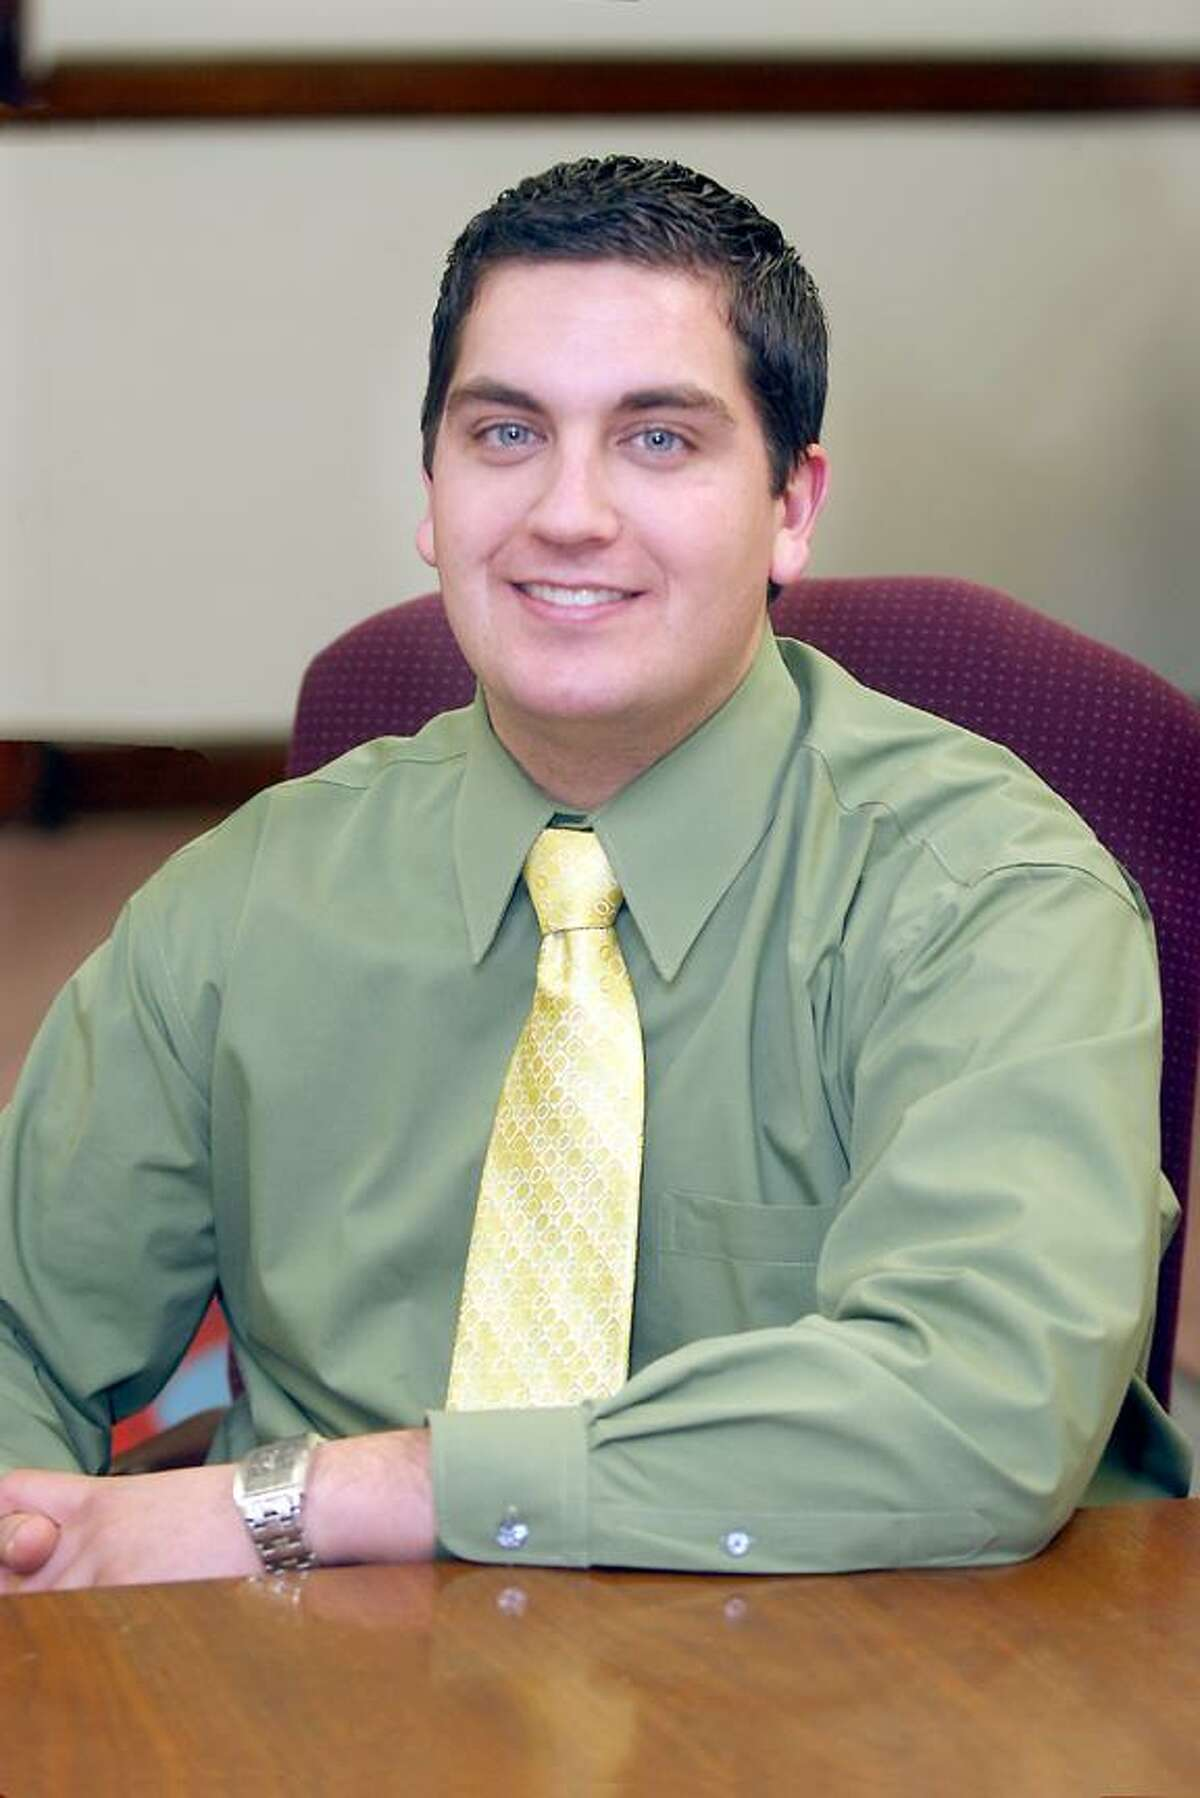 File photo Mayor Ryan Bingham, who was elected as Torrington's mayor in 2005 at the age of 22, is mulling his political future, including whether he'll seek another term this fall.